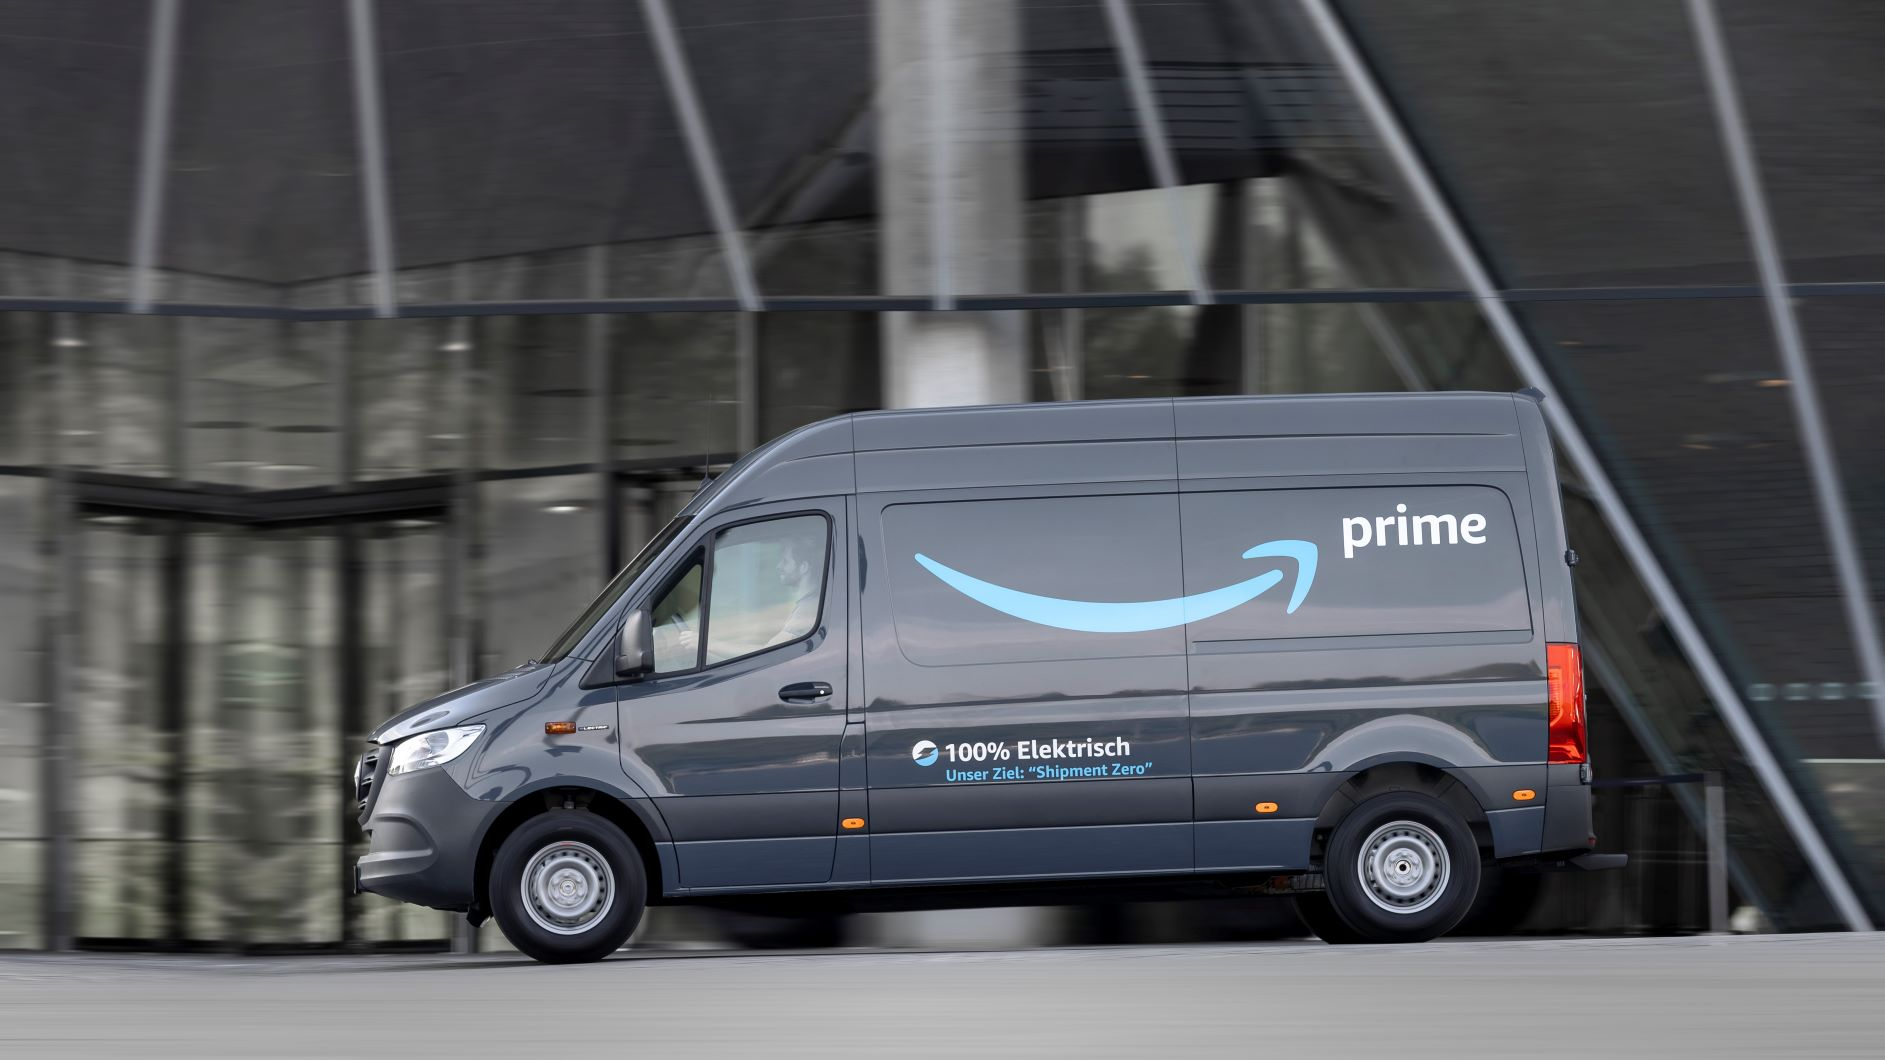 Mercedes-Benz electric Sprinter van for Amazon